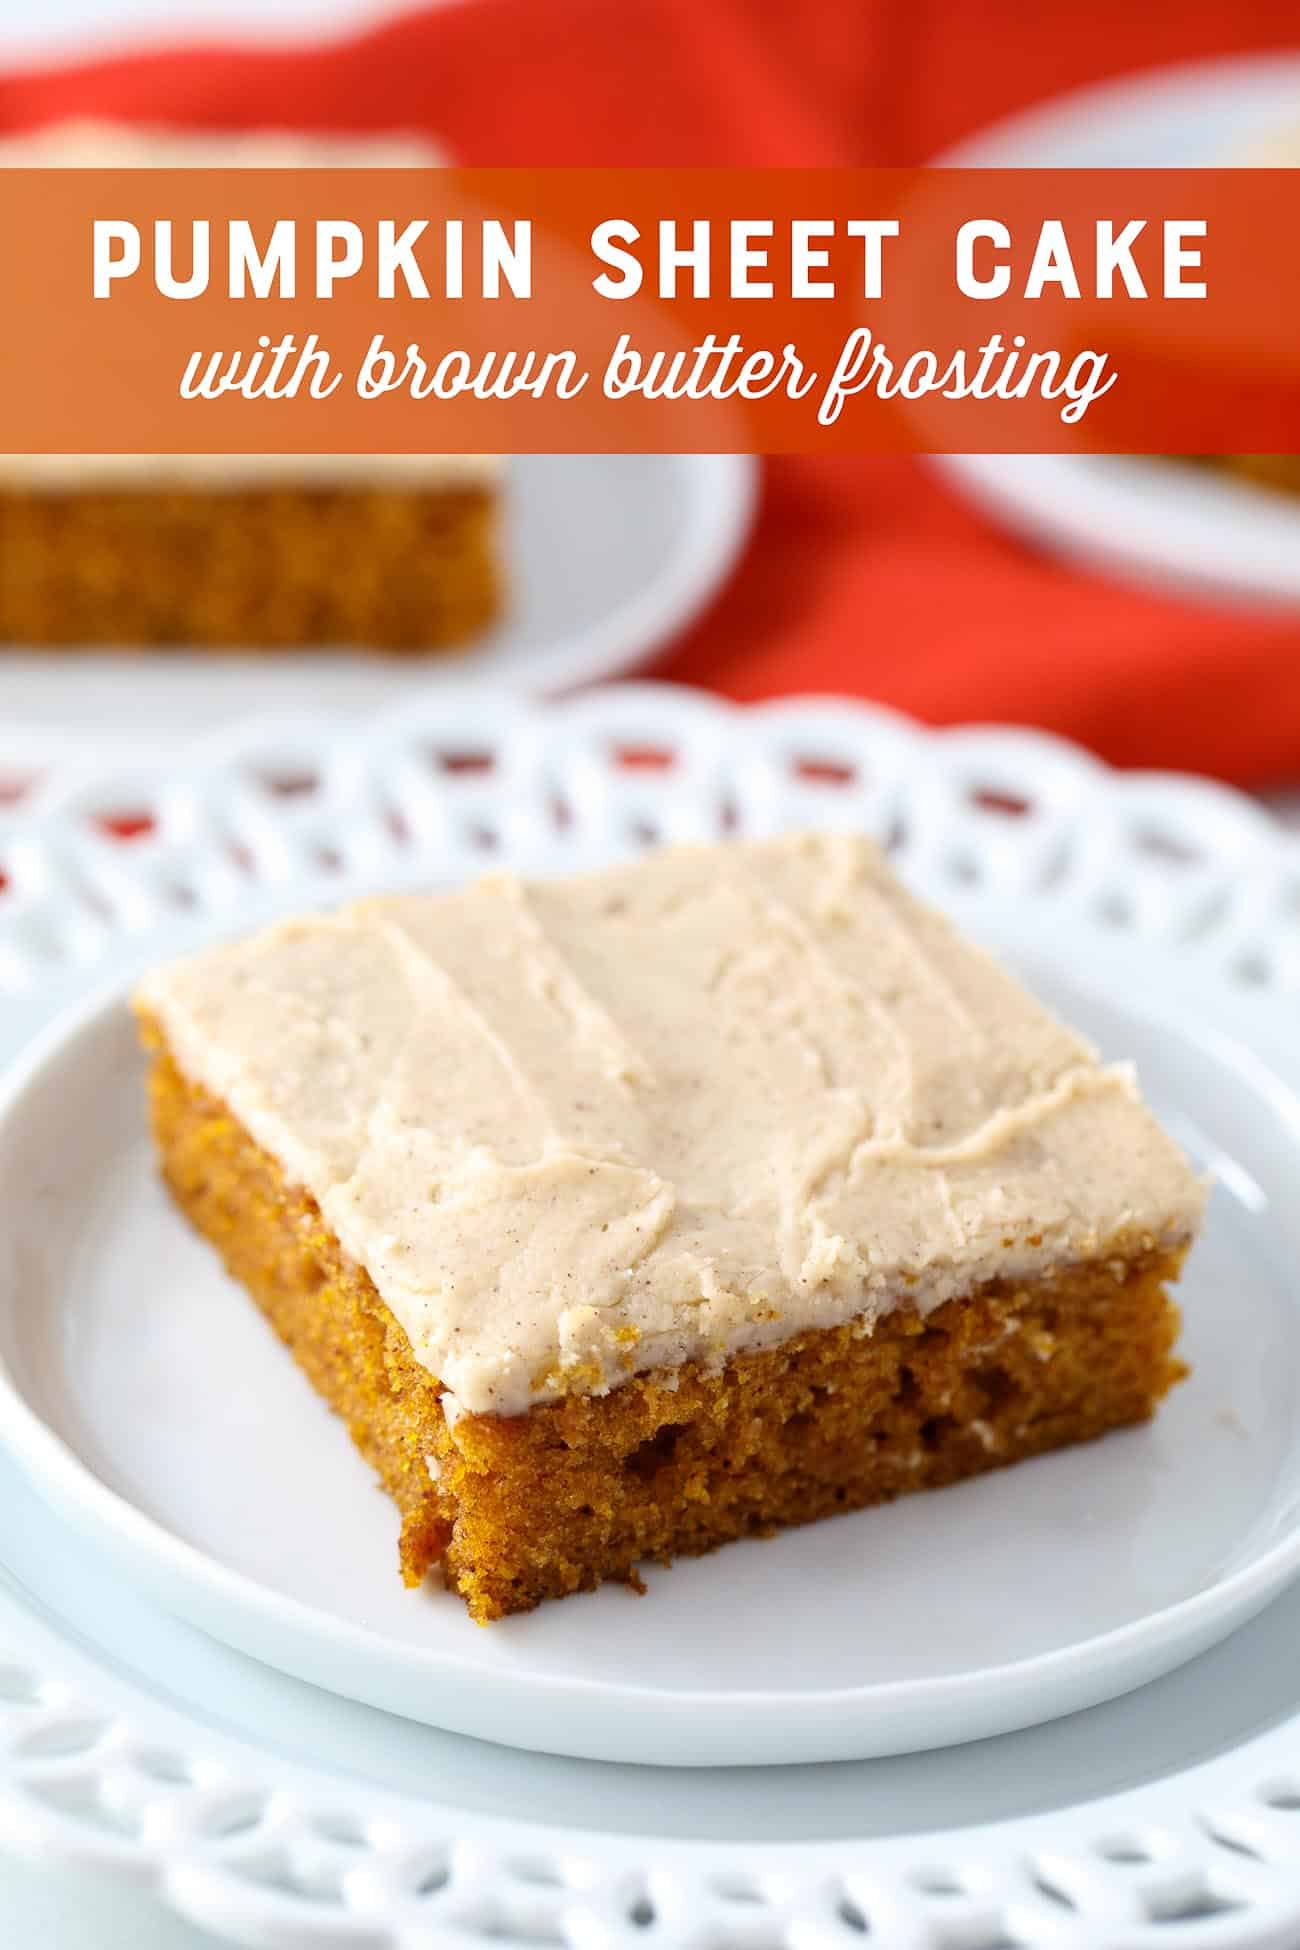 Pumpkin Sheet Cake with Brown Butter Frosting Recipe